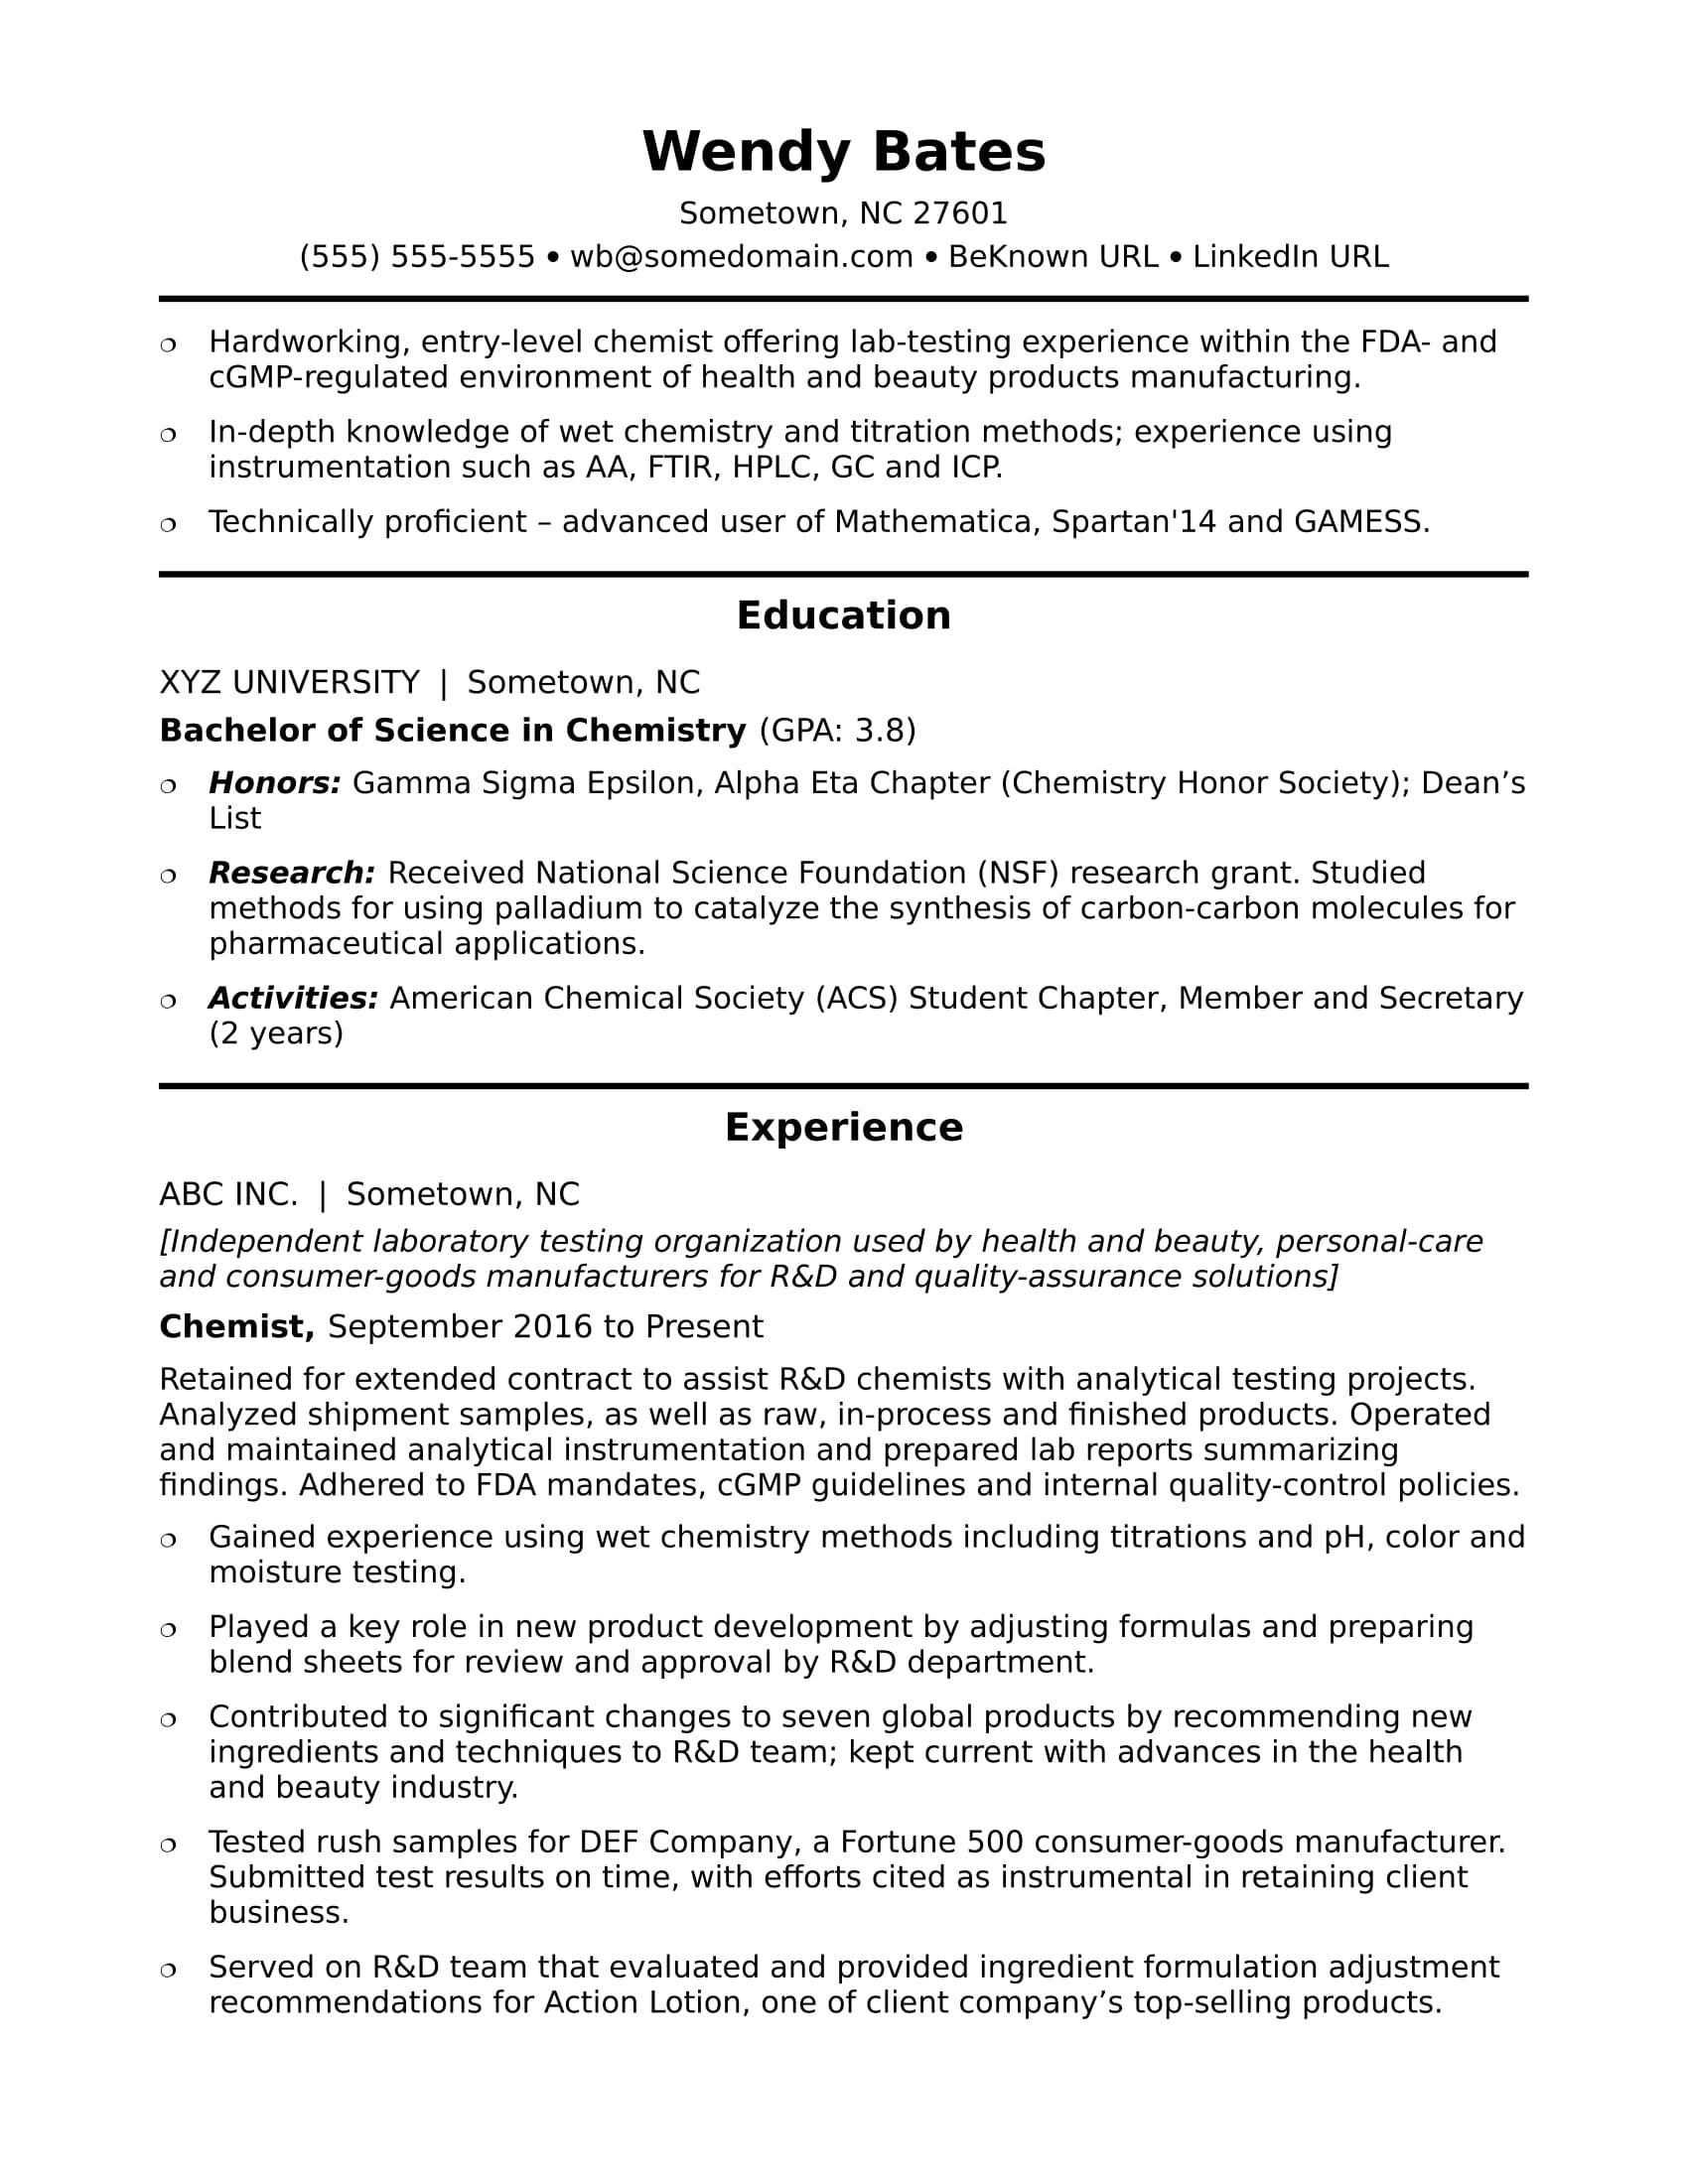 Sample Resume For An Entry Level Chemist  Combined Resume Template